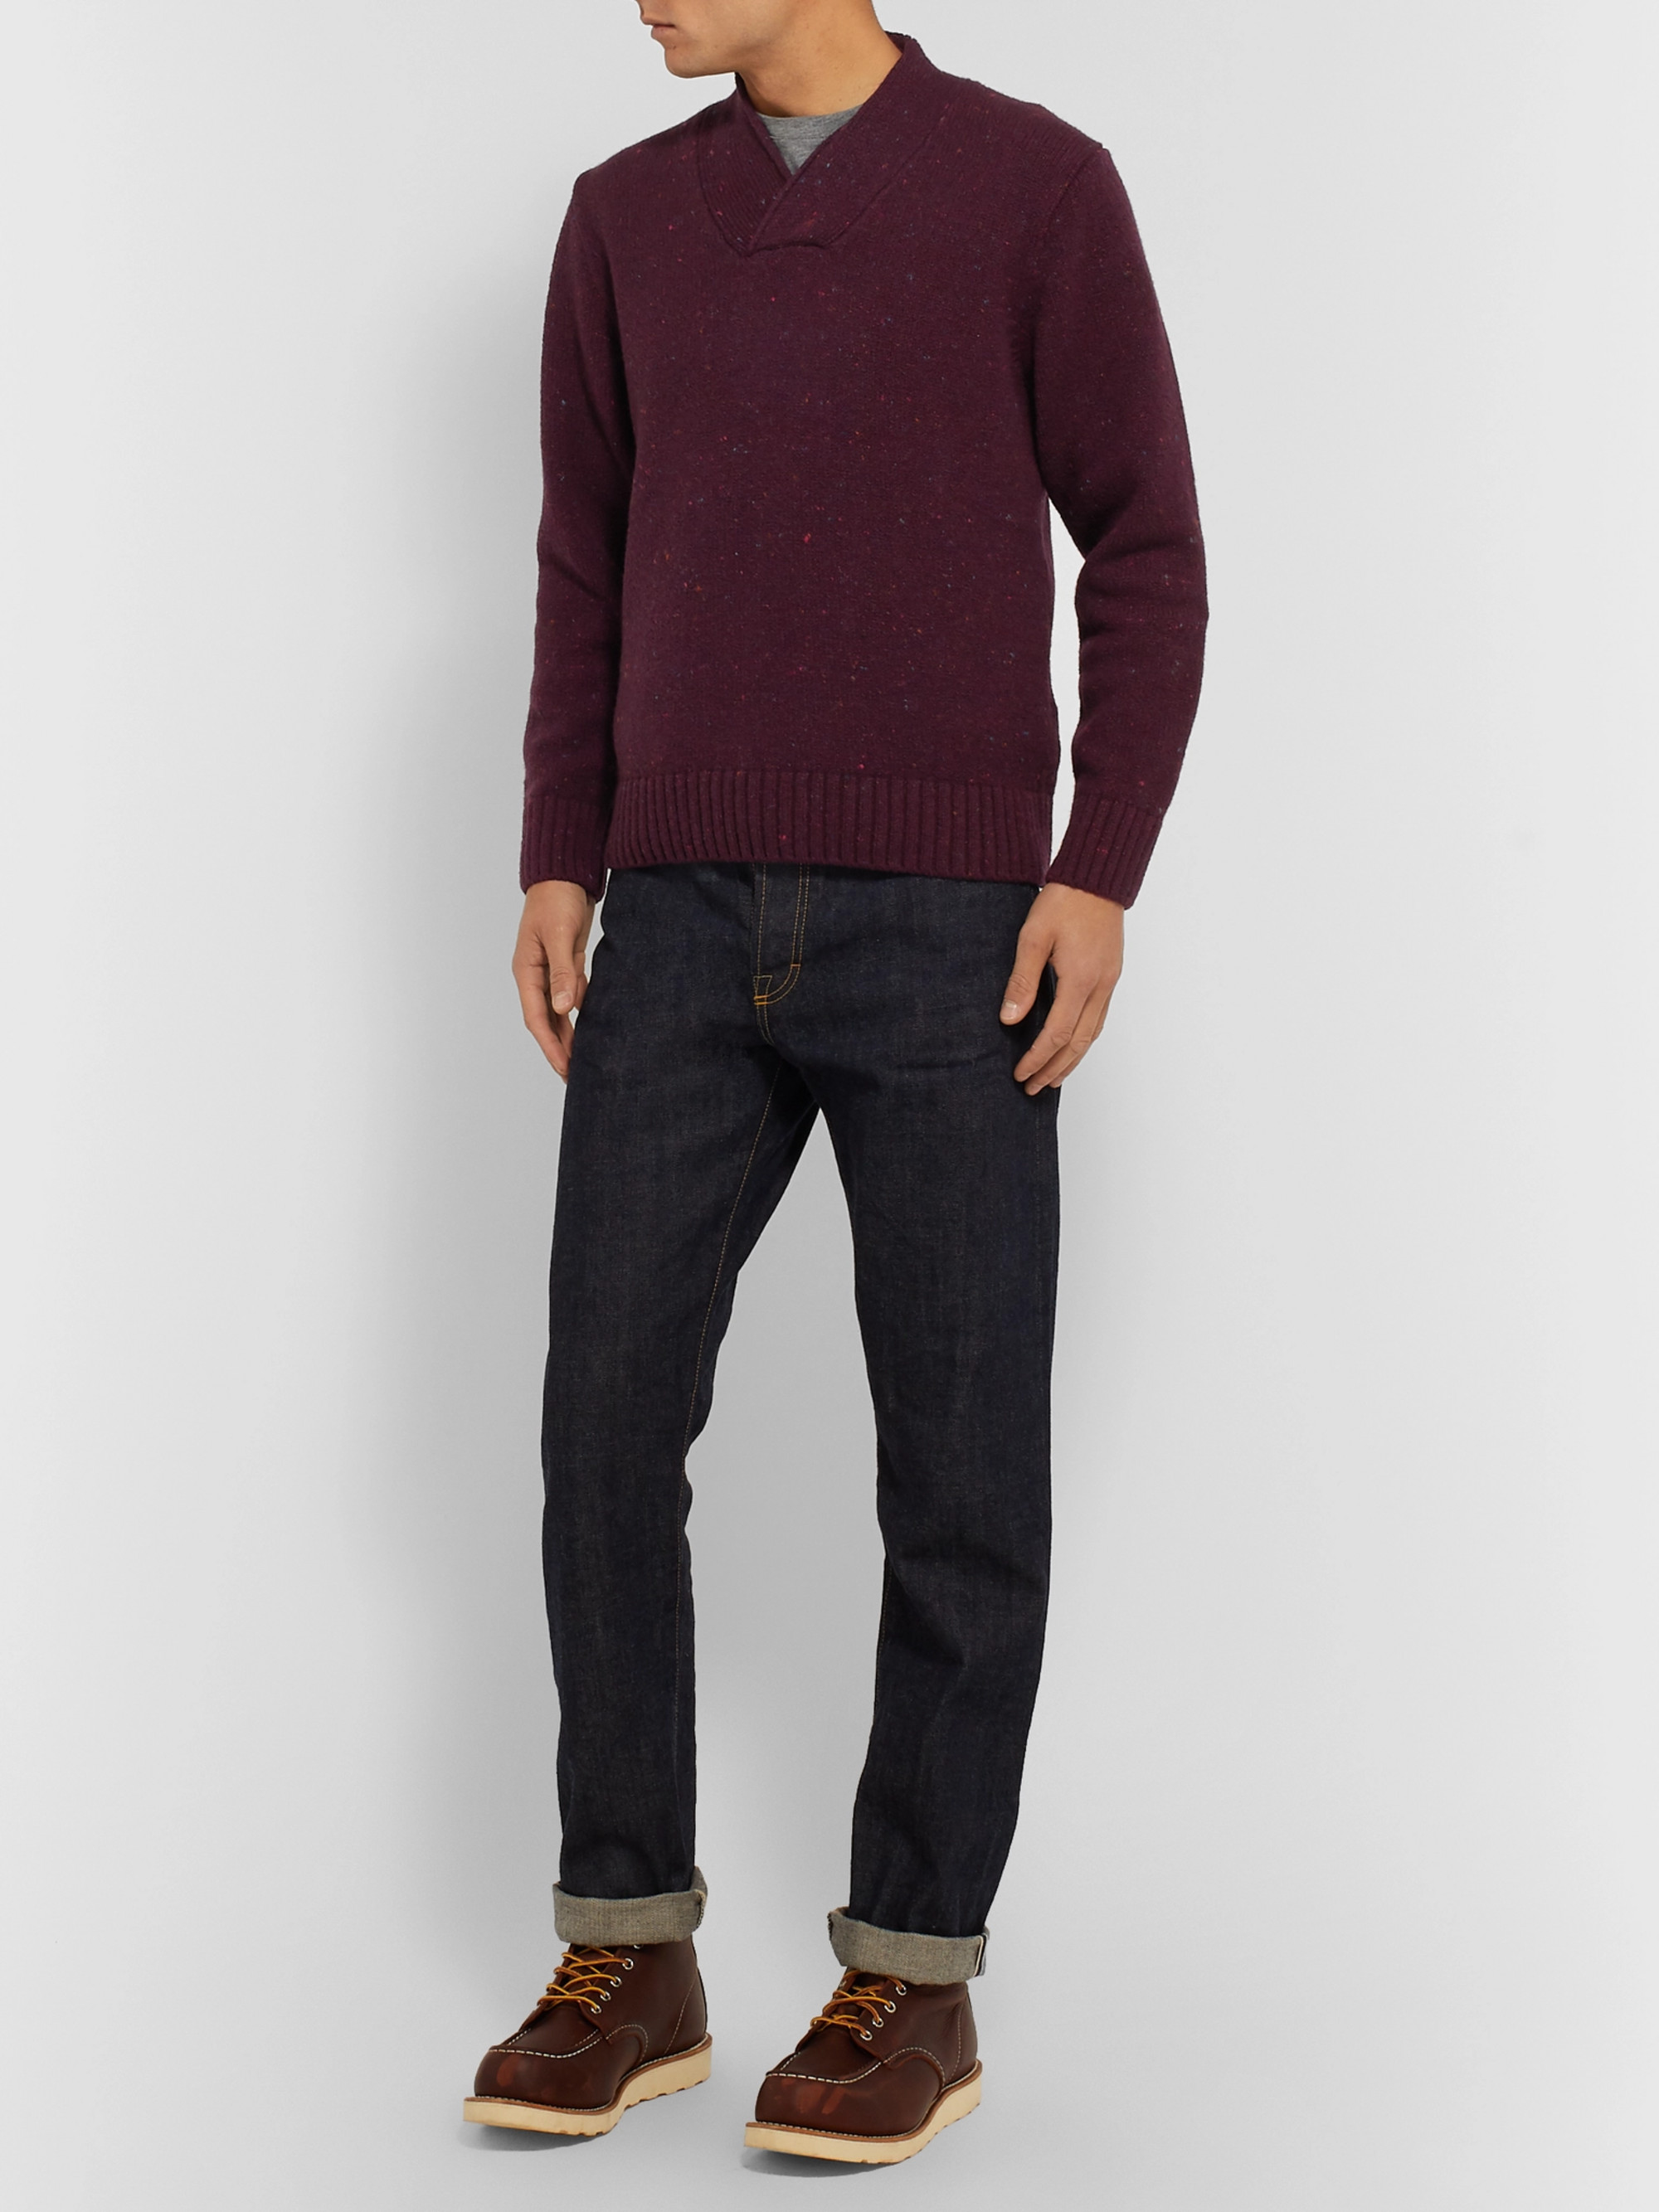 Inis Meáin Shawl-Collar Donegal Merino Wool and Cashmere-Blend Sweater